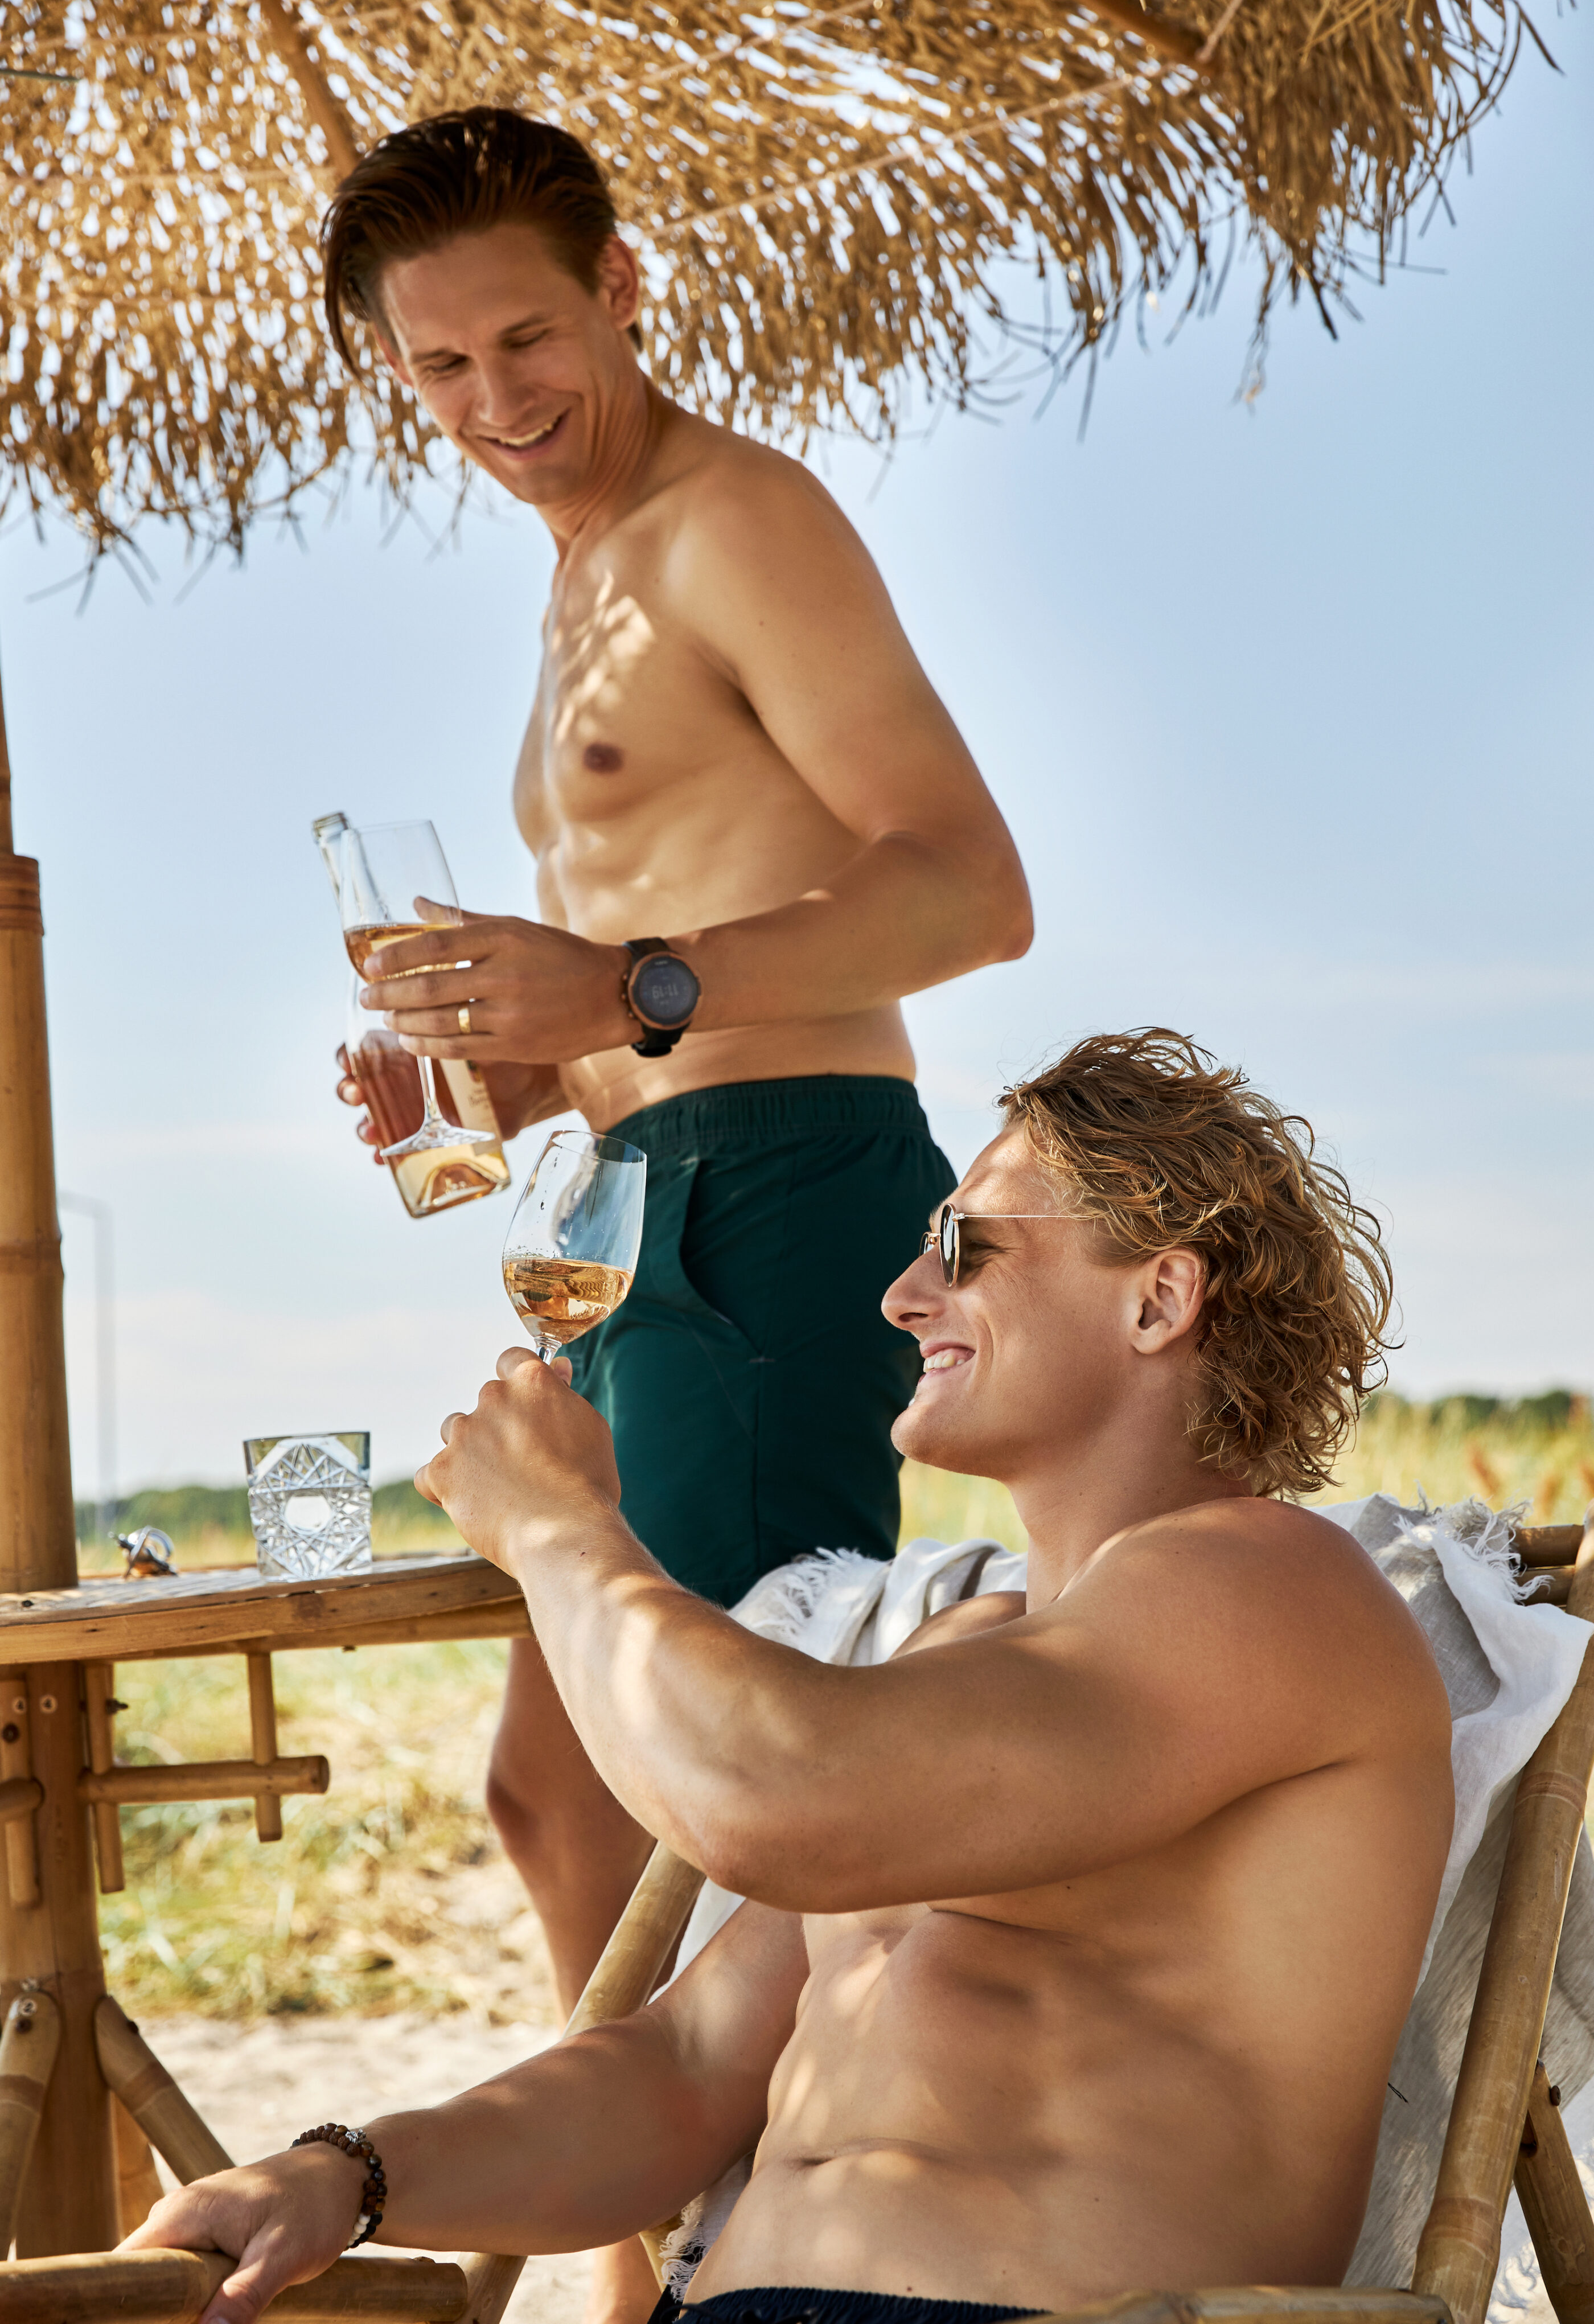 Two men drinking wine at the beach